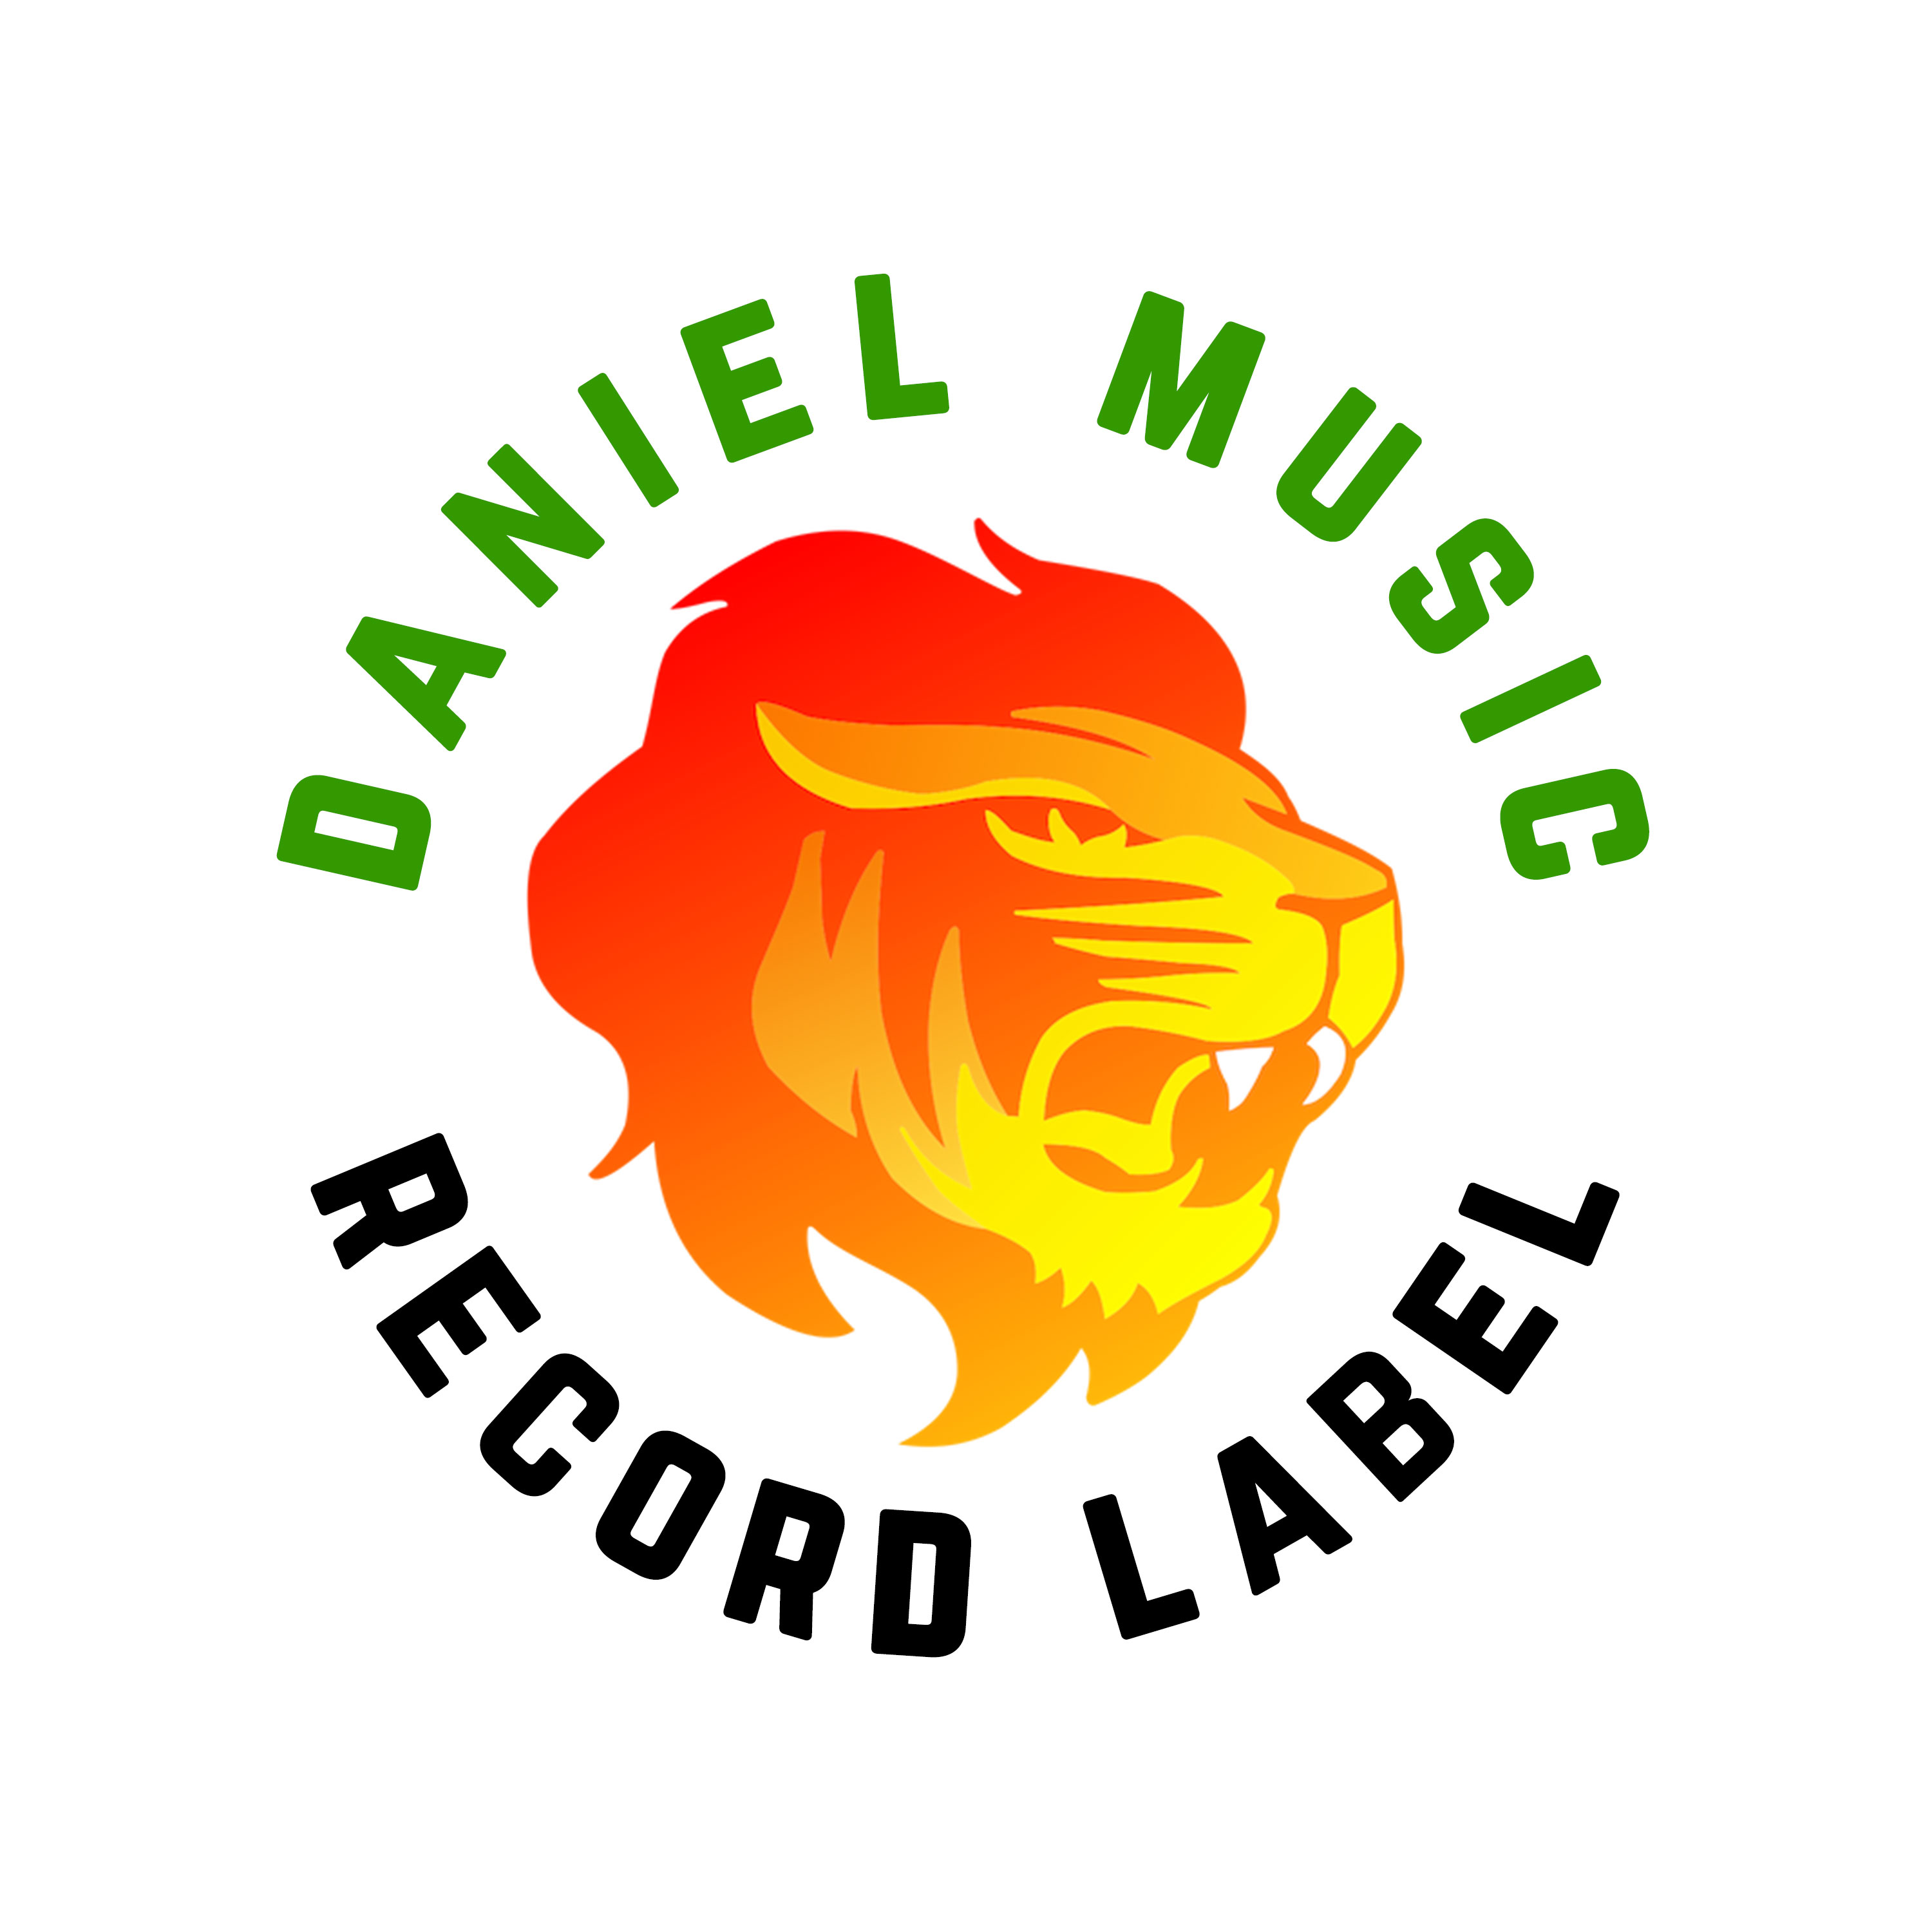 Daniel Music Merch